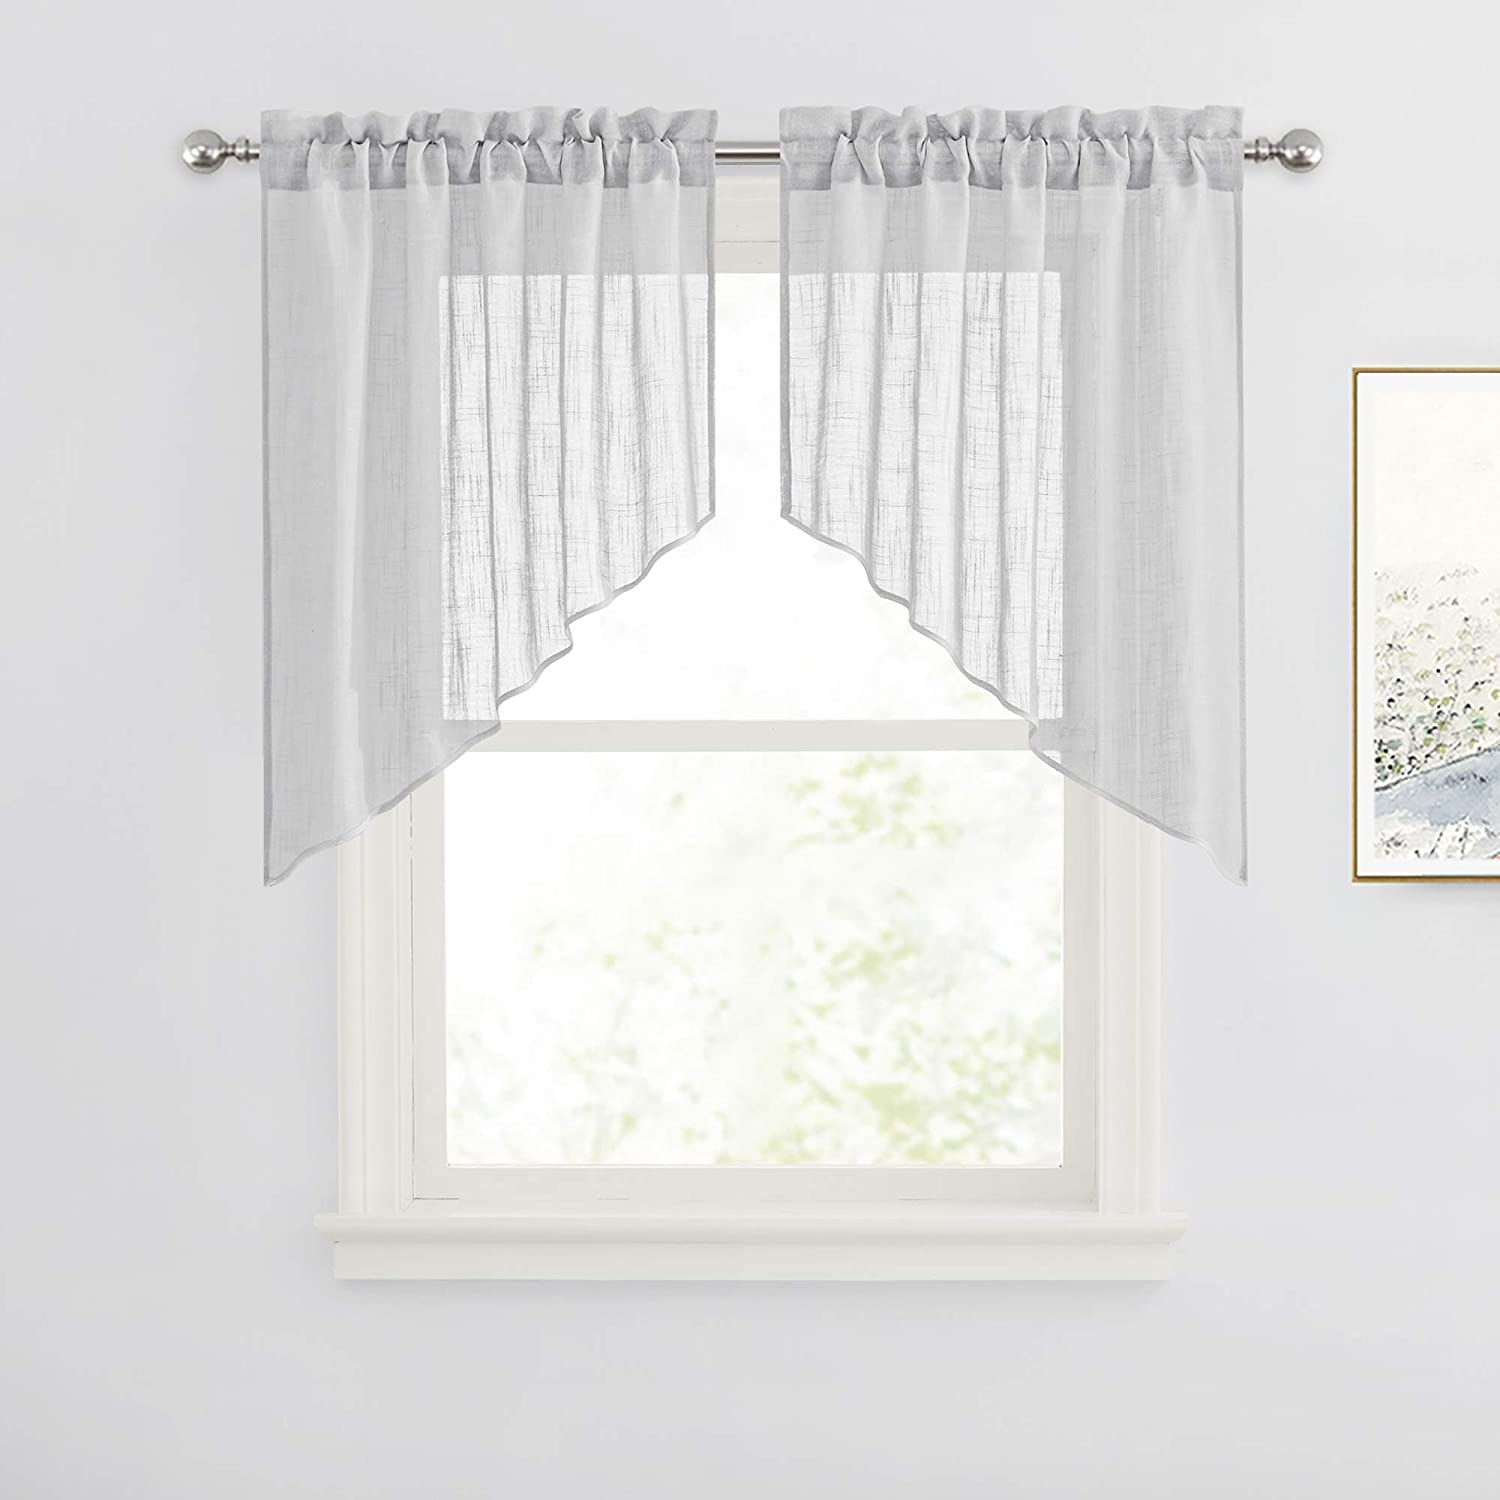 Great Gift Table Linen Curtain Panel White Silver Grey Black Leaves Modern House Decor Cafe Curtain Kitchen Valance Curtains Window Treatments Home Living Deshpandefoundationindia Org